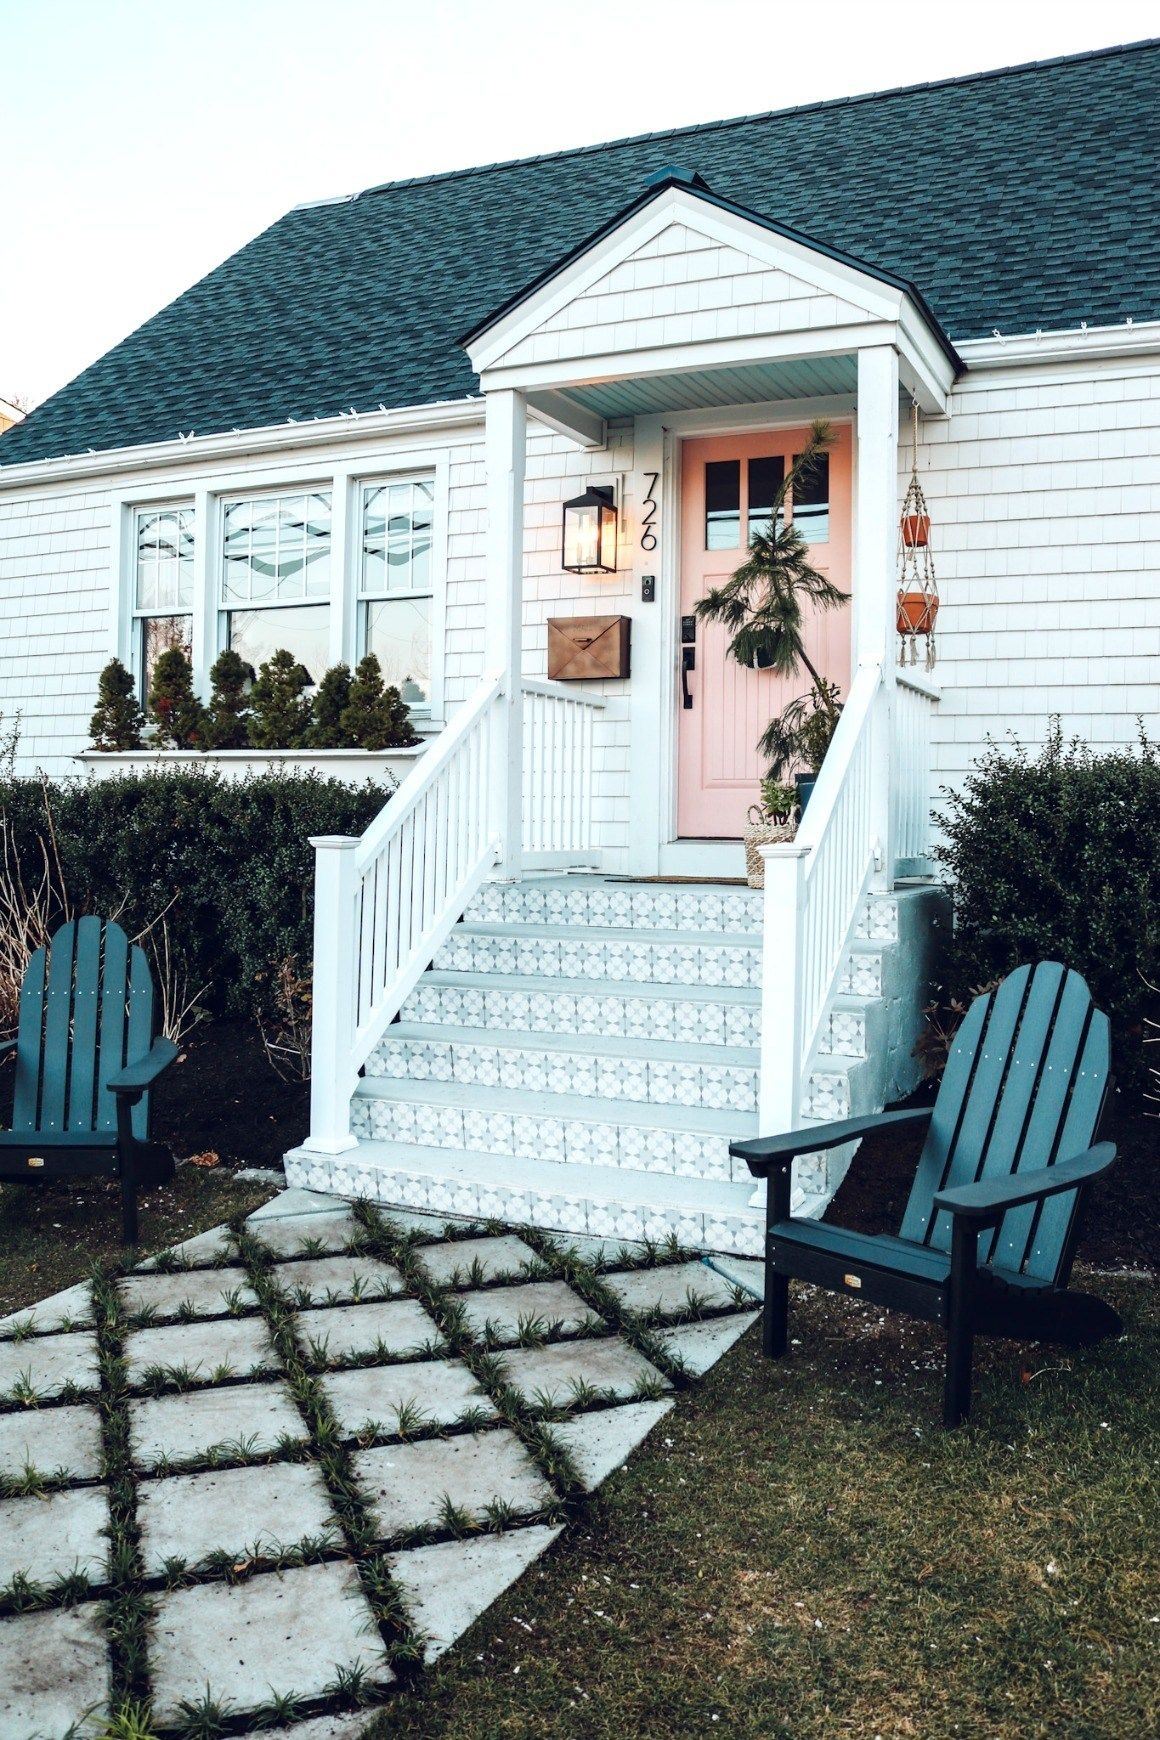 20 Diy Front Step Ideas Creative Ideas For Front Entry Steps | Steps For Mobile Homes Outdoor | Plastic | Small | Steel | Portable | Pressure Treated